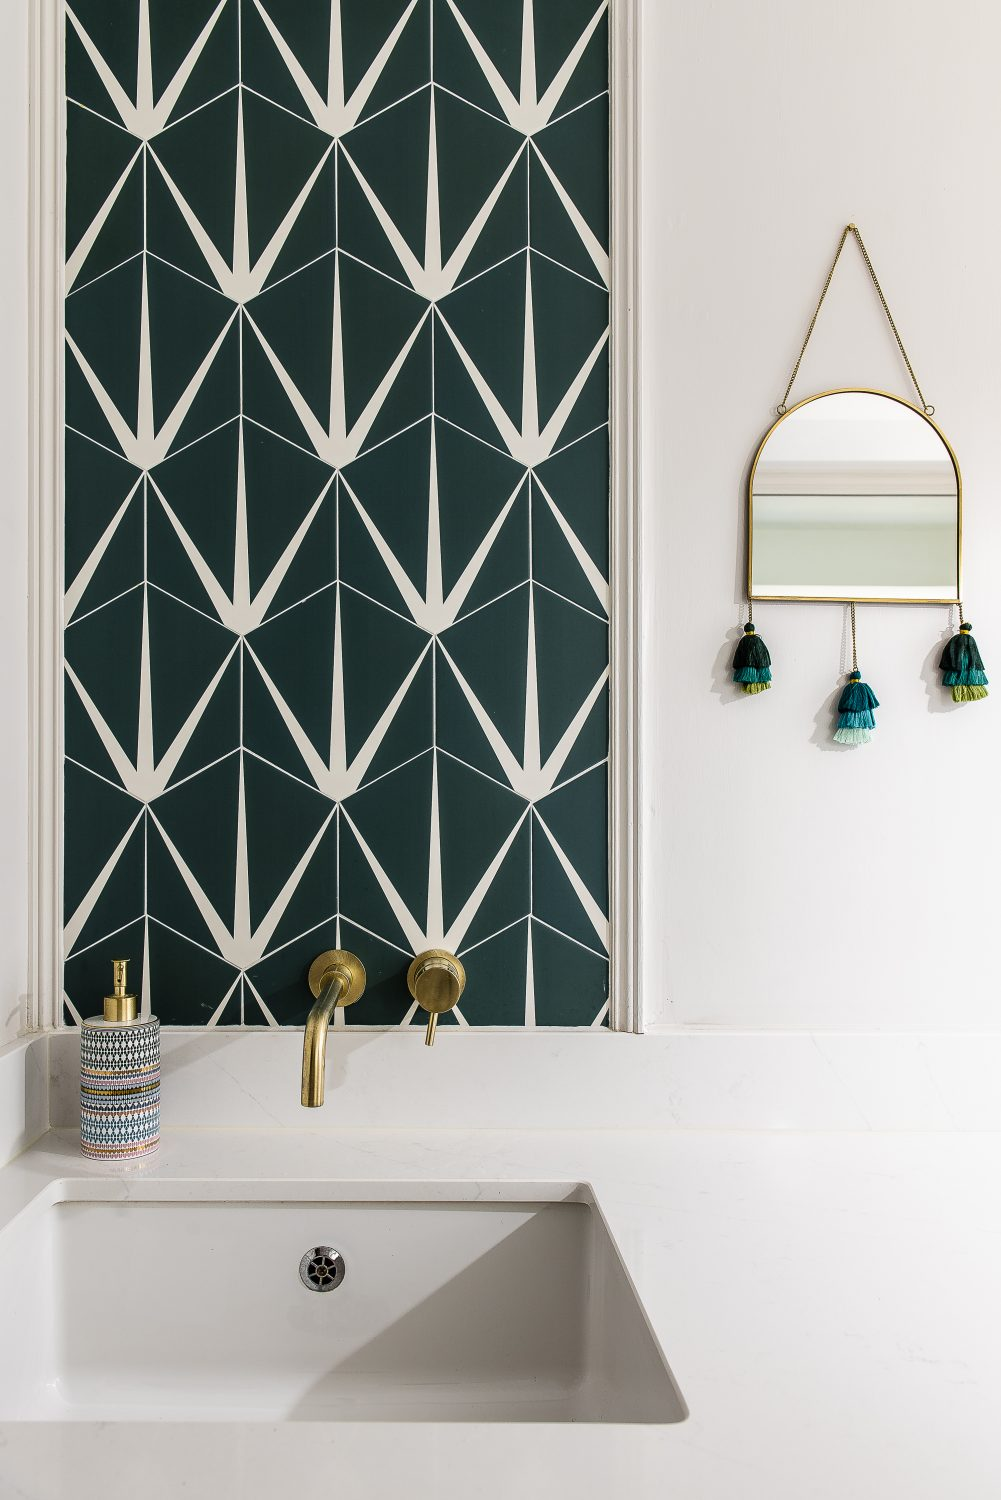 A panel of tiles by Artisans of Devizes in the utility room